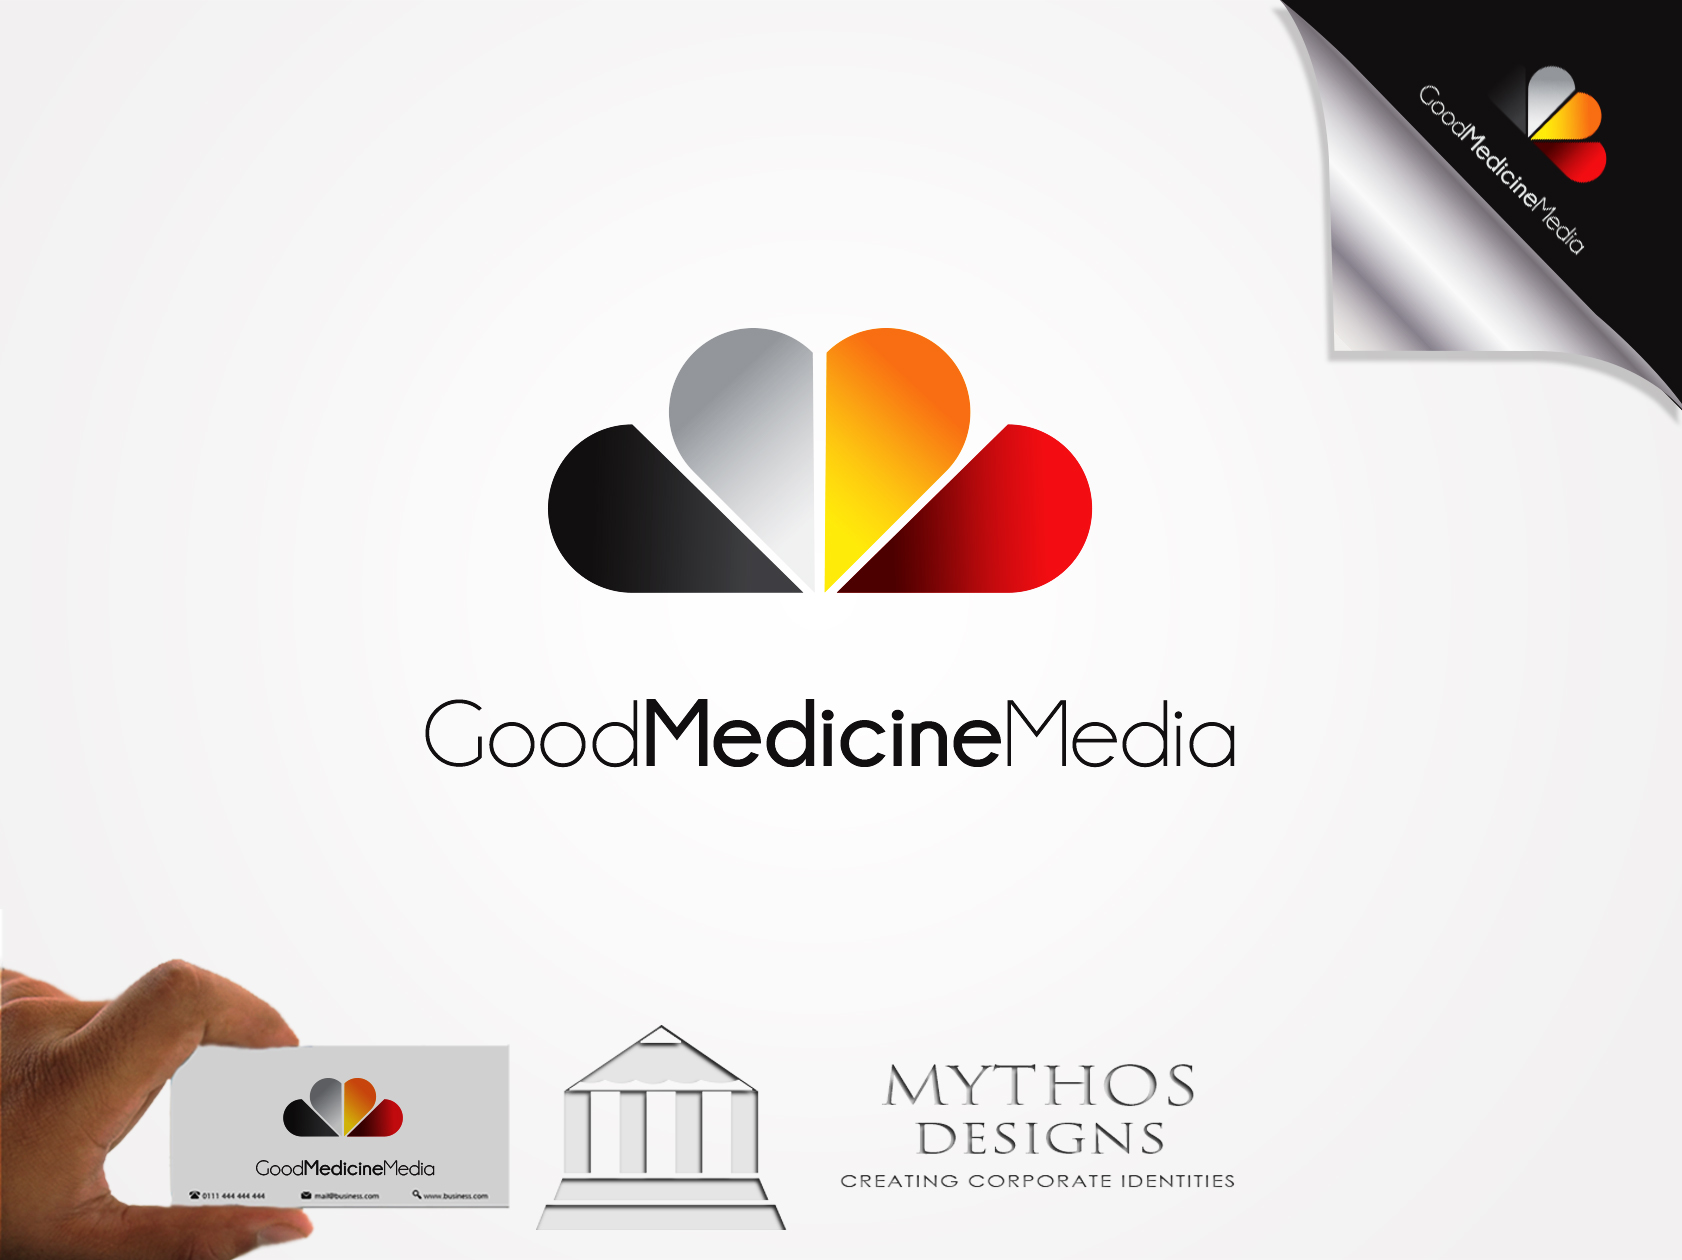 Logo Design by Mythos Designs - Entry No. 178 in the Logo Design Contest Good Medicine Media Logo Design.